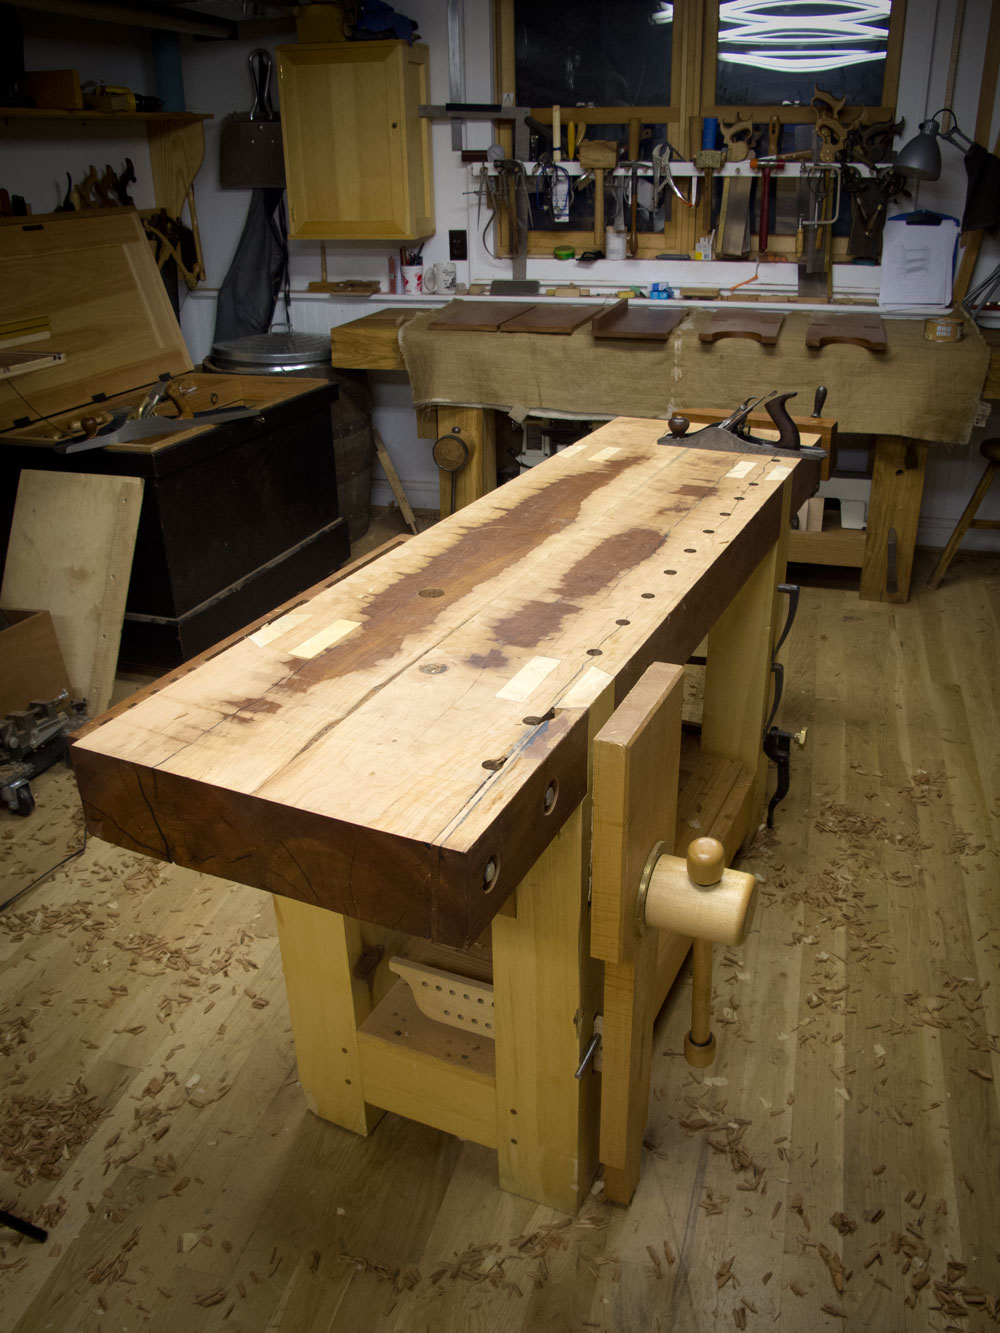 slab-top workbenches and evil spirits, part 2 | lost art press